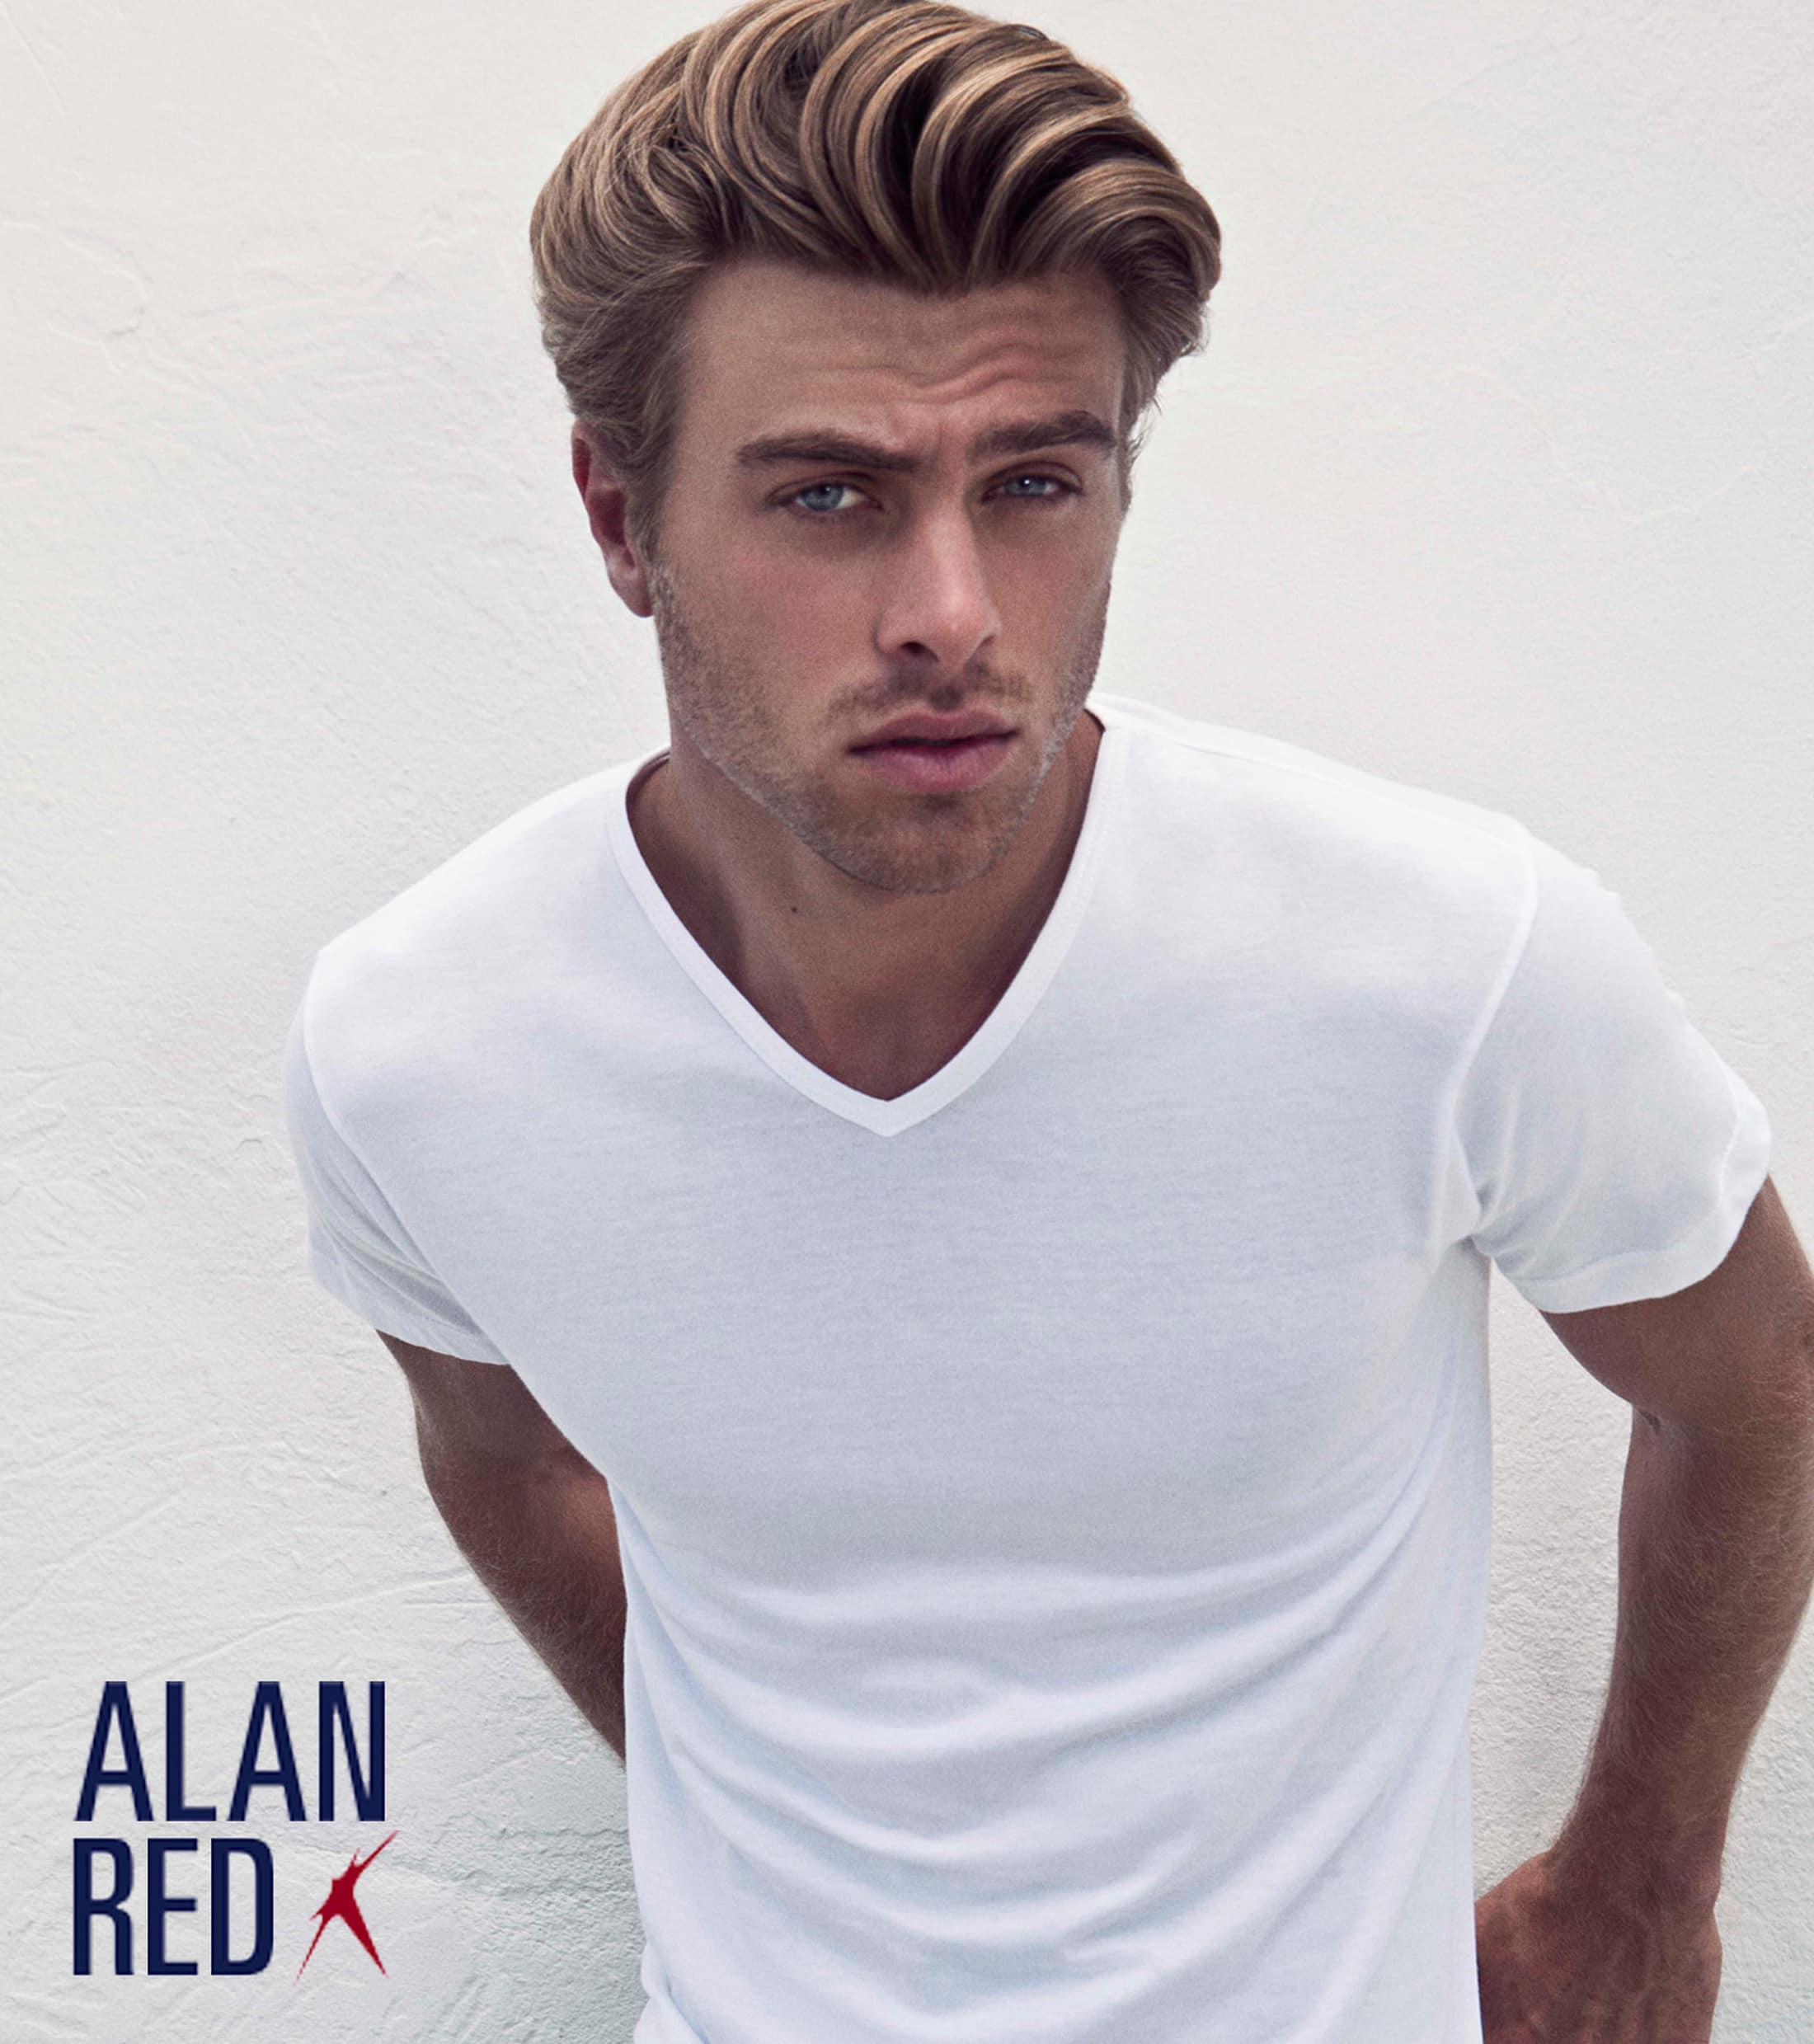 Alan Red Vermont T-shirt V-Neck Mouse 1-Pack foto 3